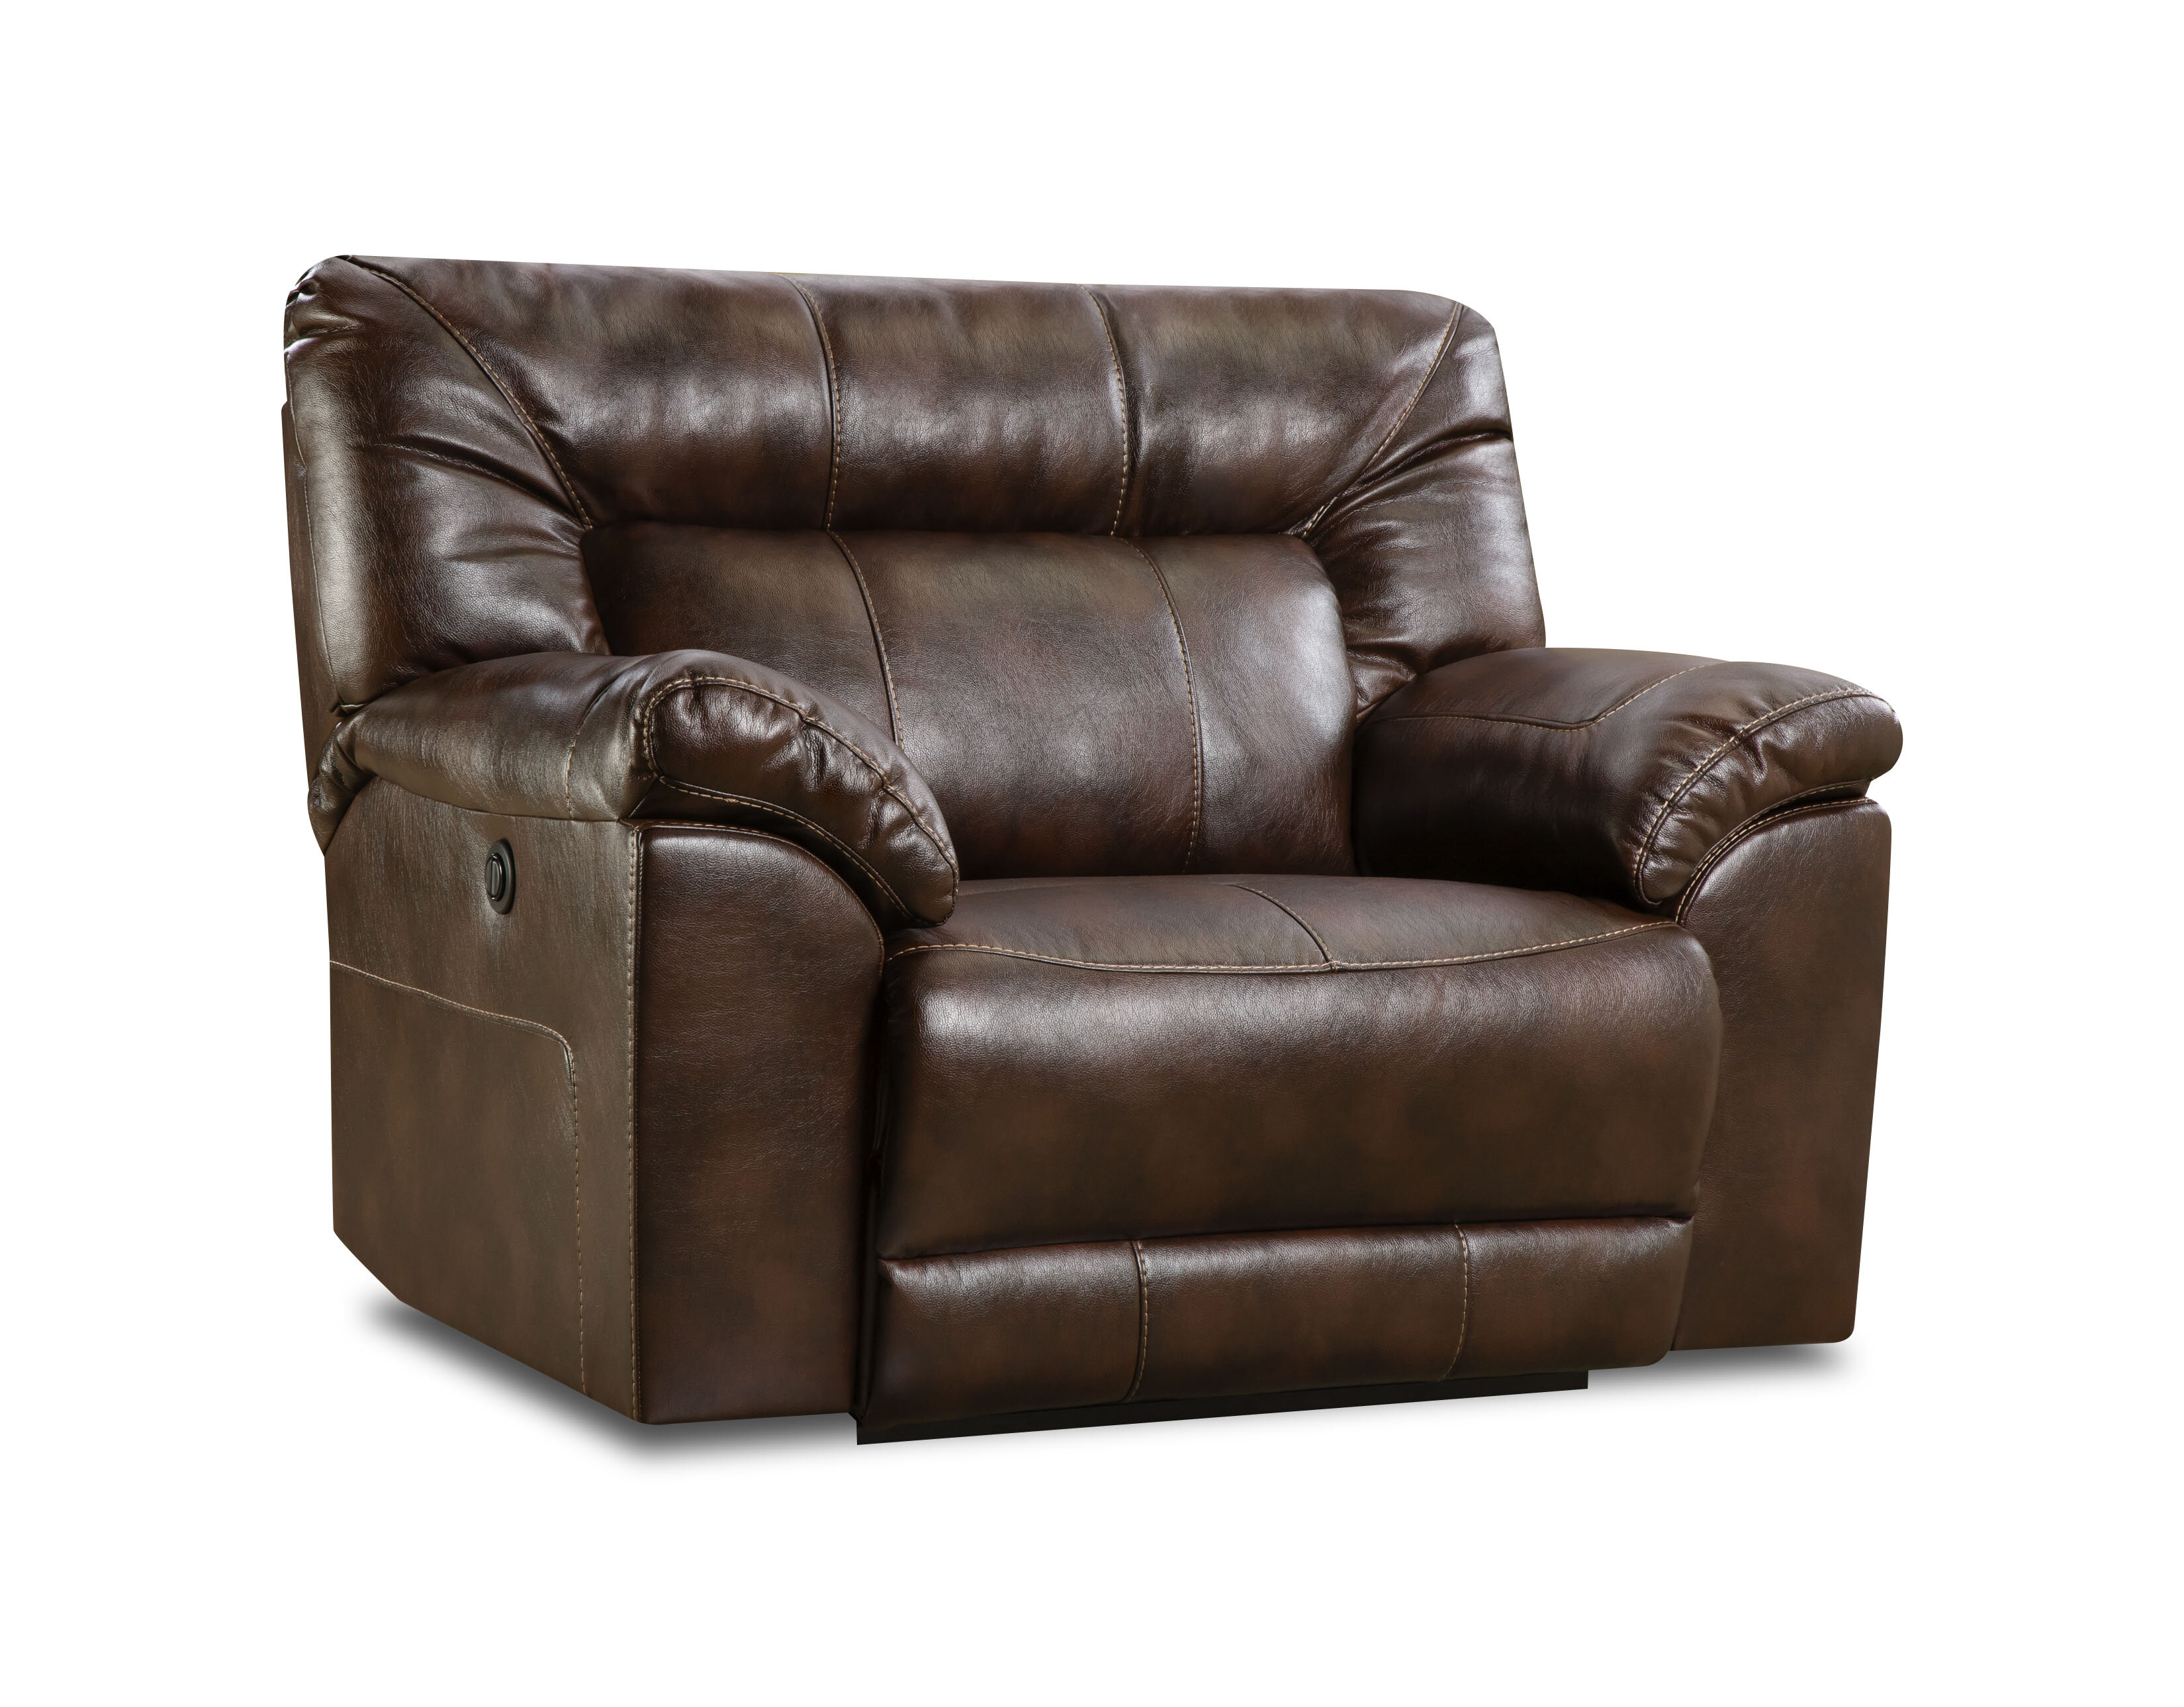 Darby Home Co Colwyn Recliner By Simmons Upholstery Reviews Wayfair